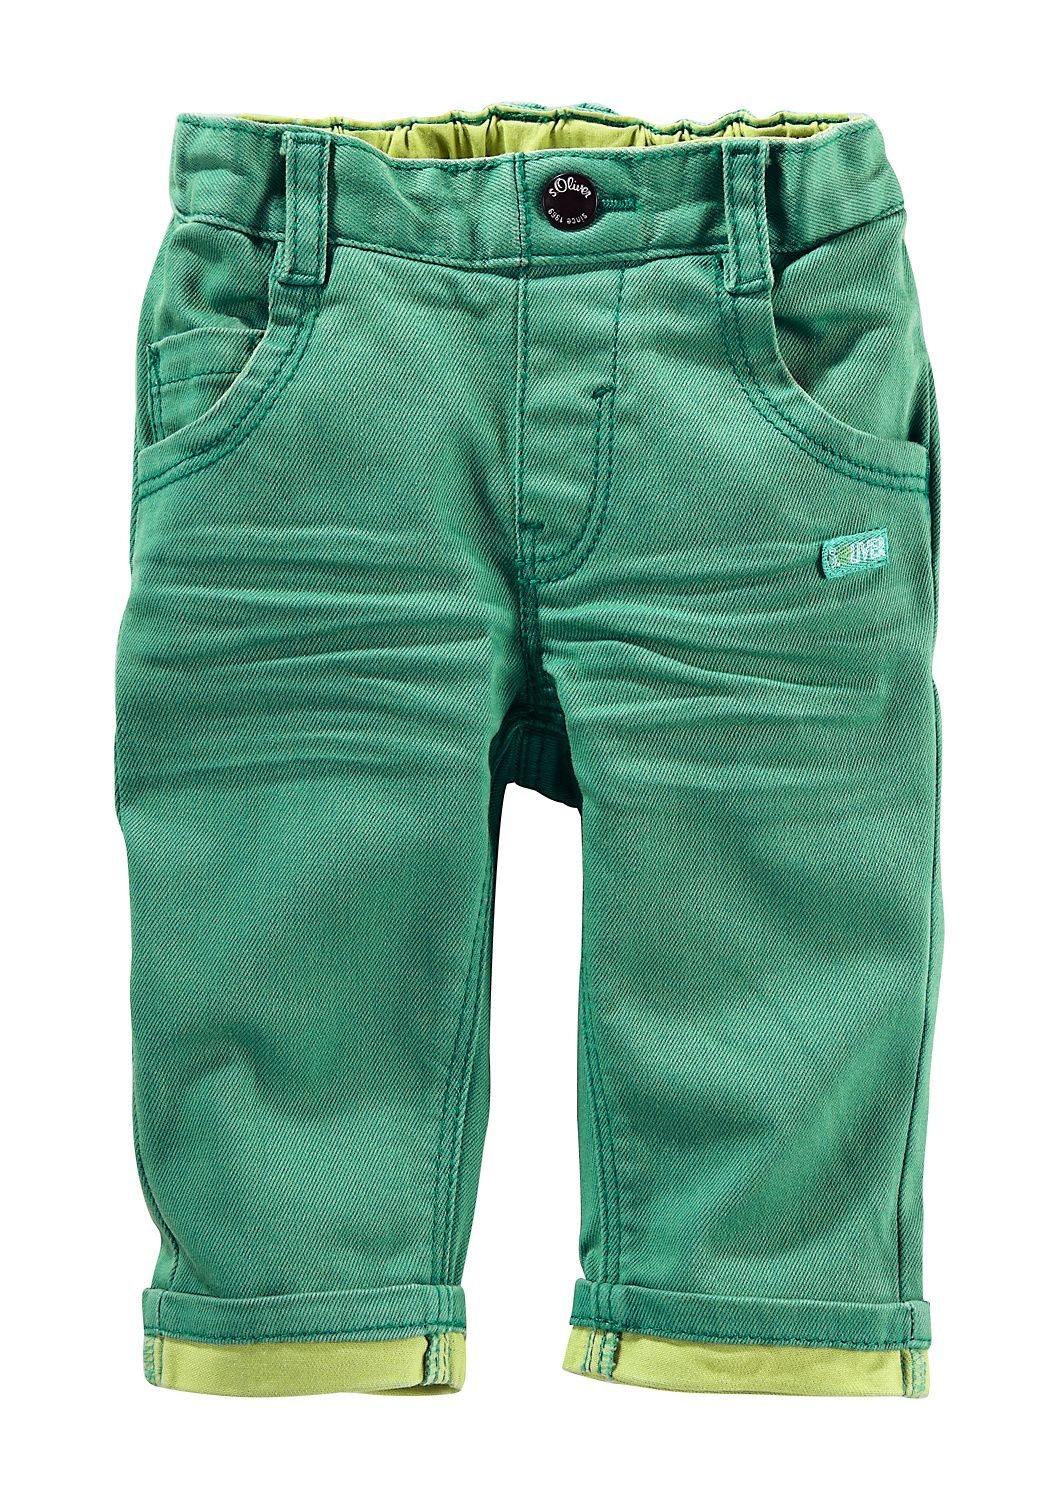 online retailer e7344 c1ef0 Trousers Buy in the s.Oliver online shop | My Boys | Roupas ...